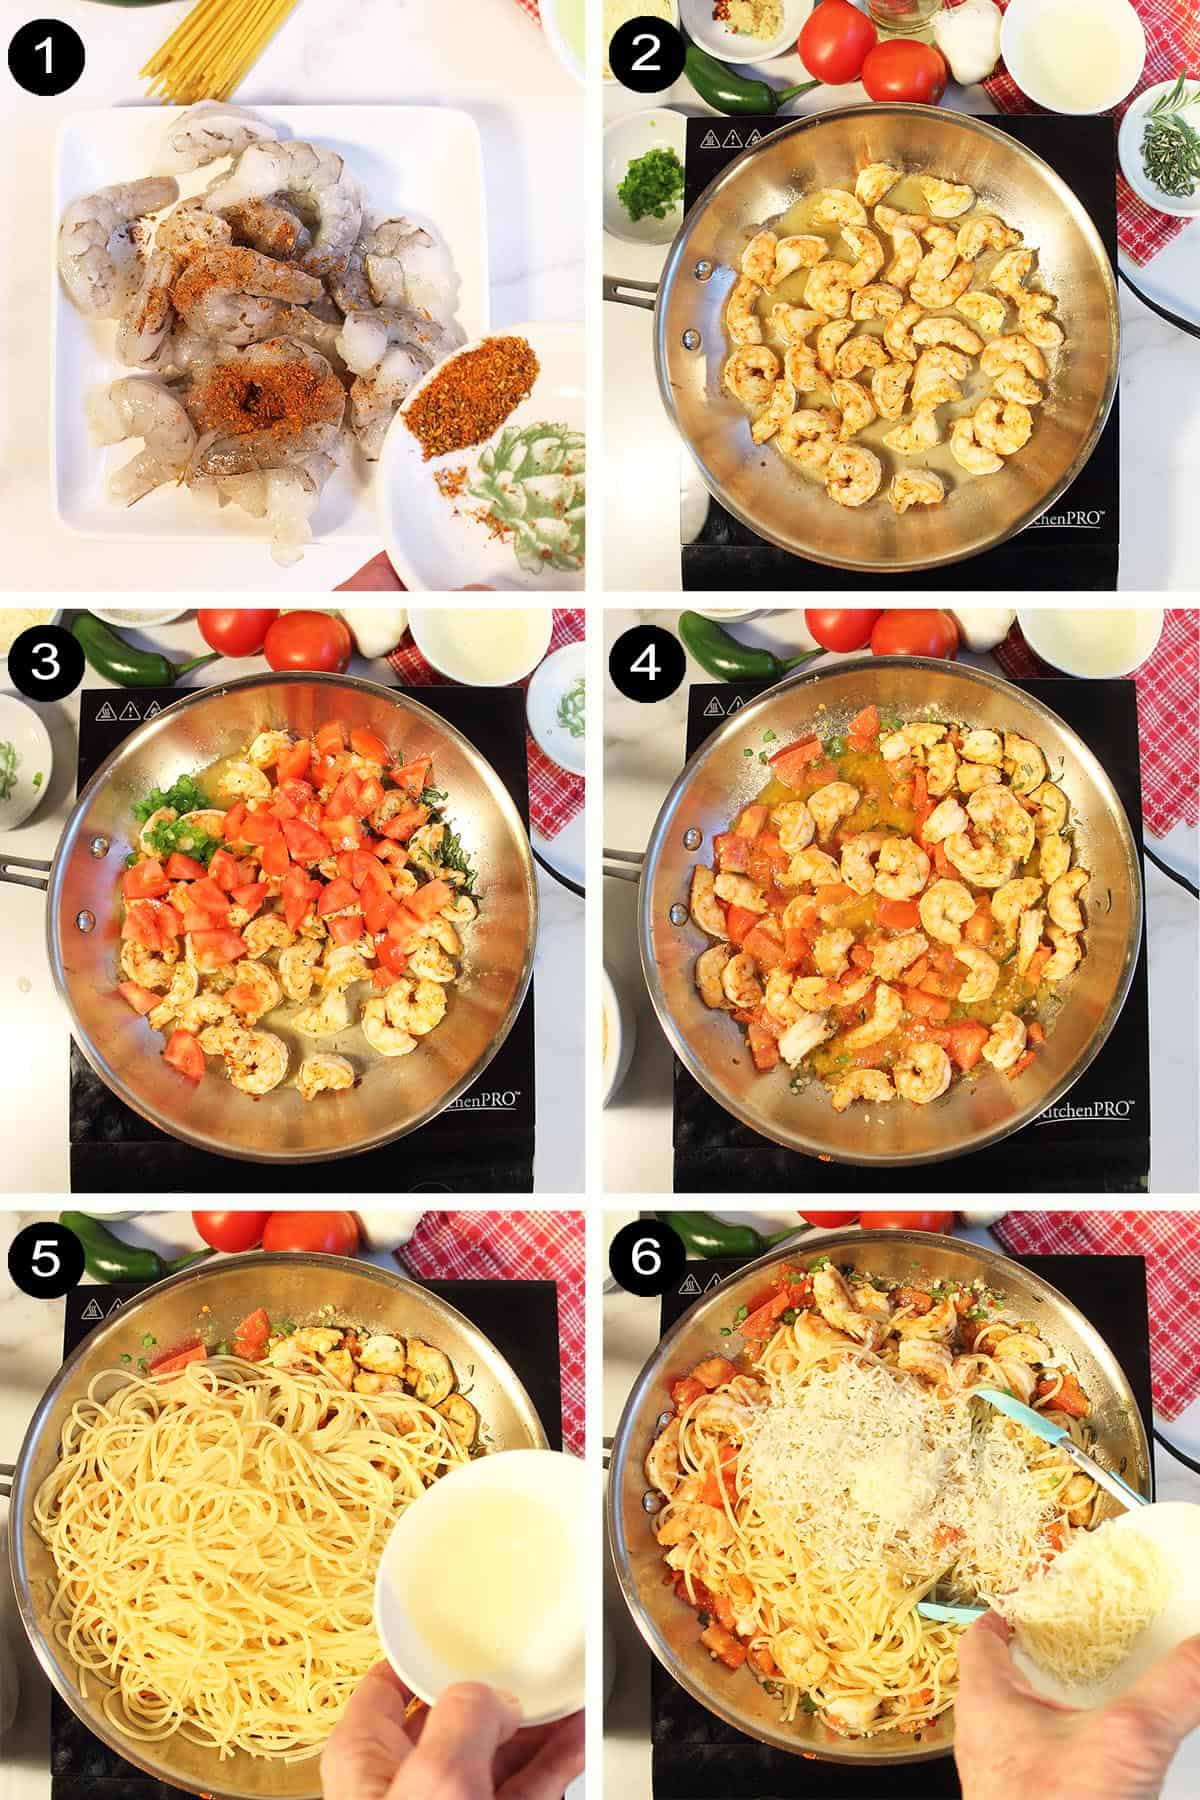 How to Cook Rattlesnake Pasta steps 1-6